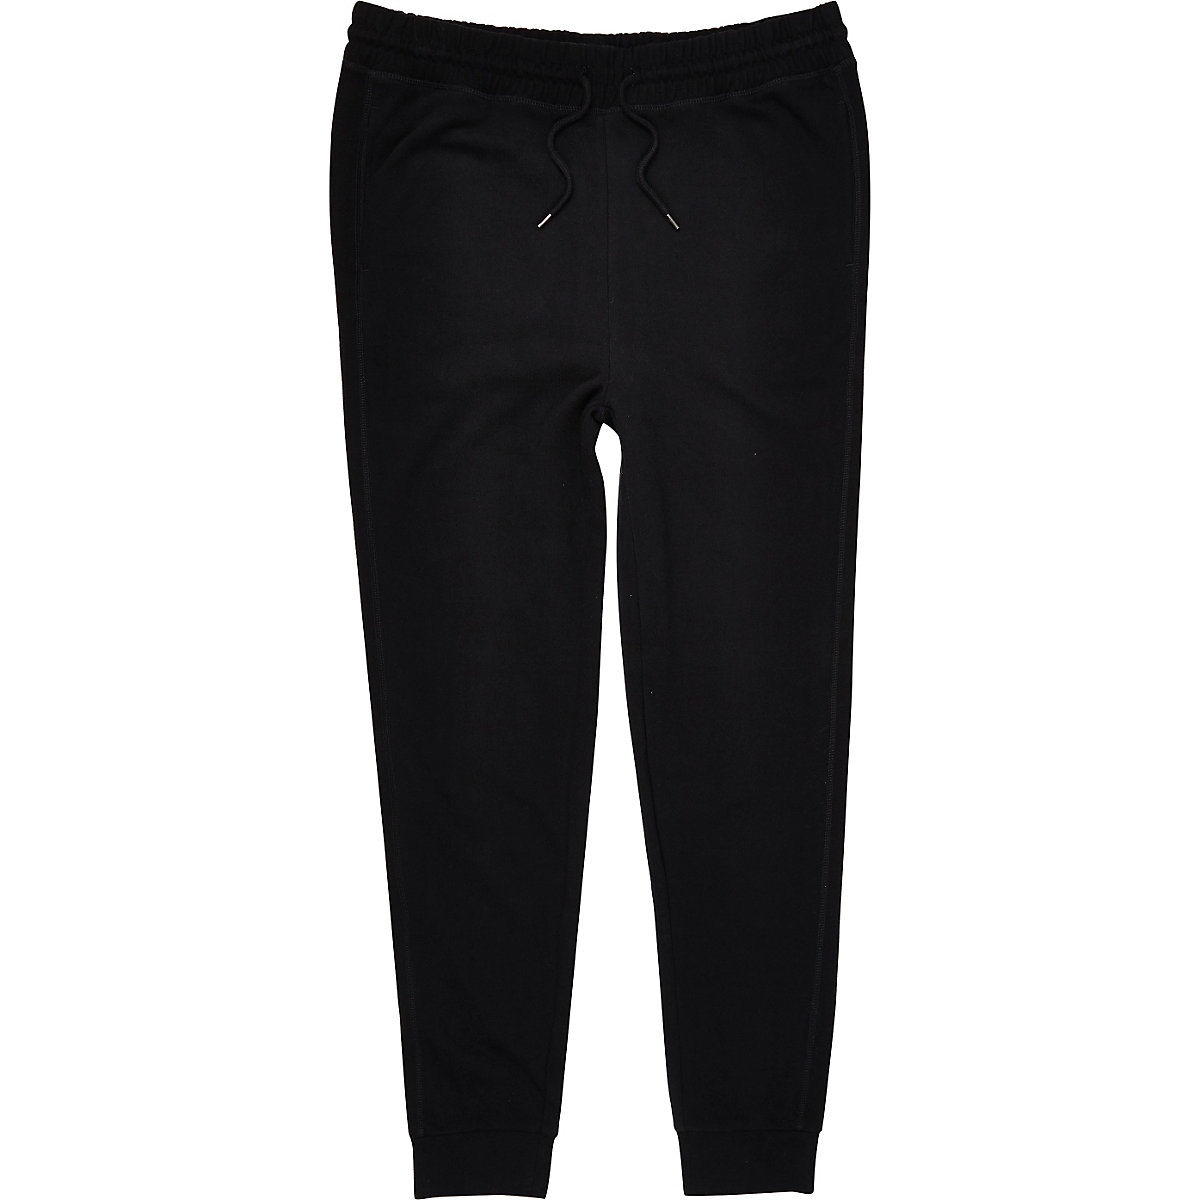 Black cotton joggers